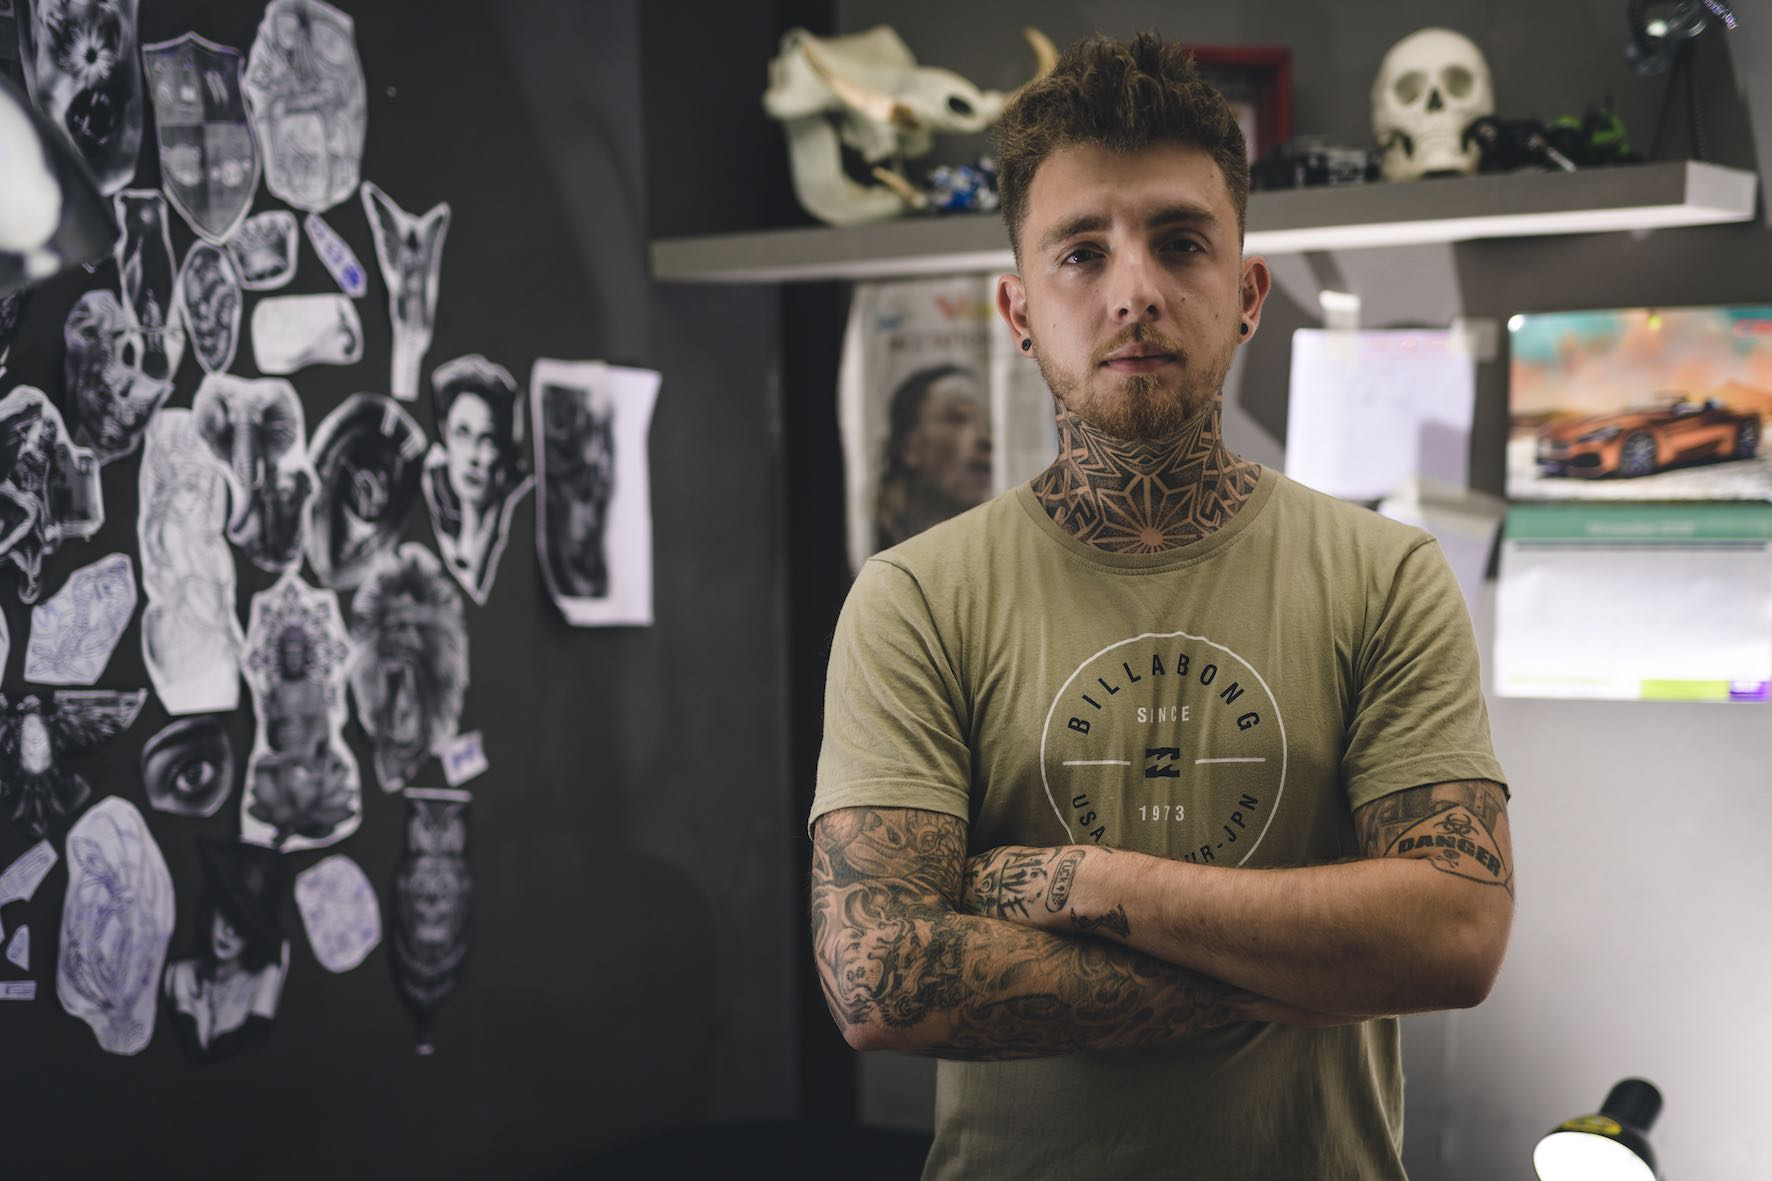 Meet Joey Sasso as our Tattoo Artist of the Week